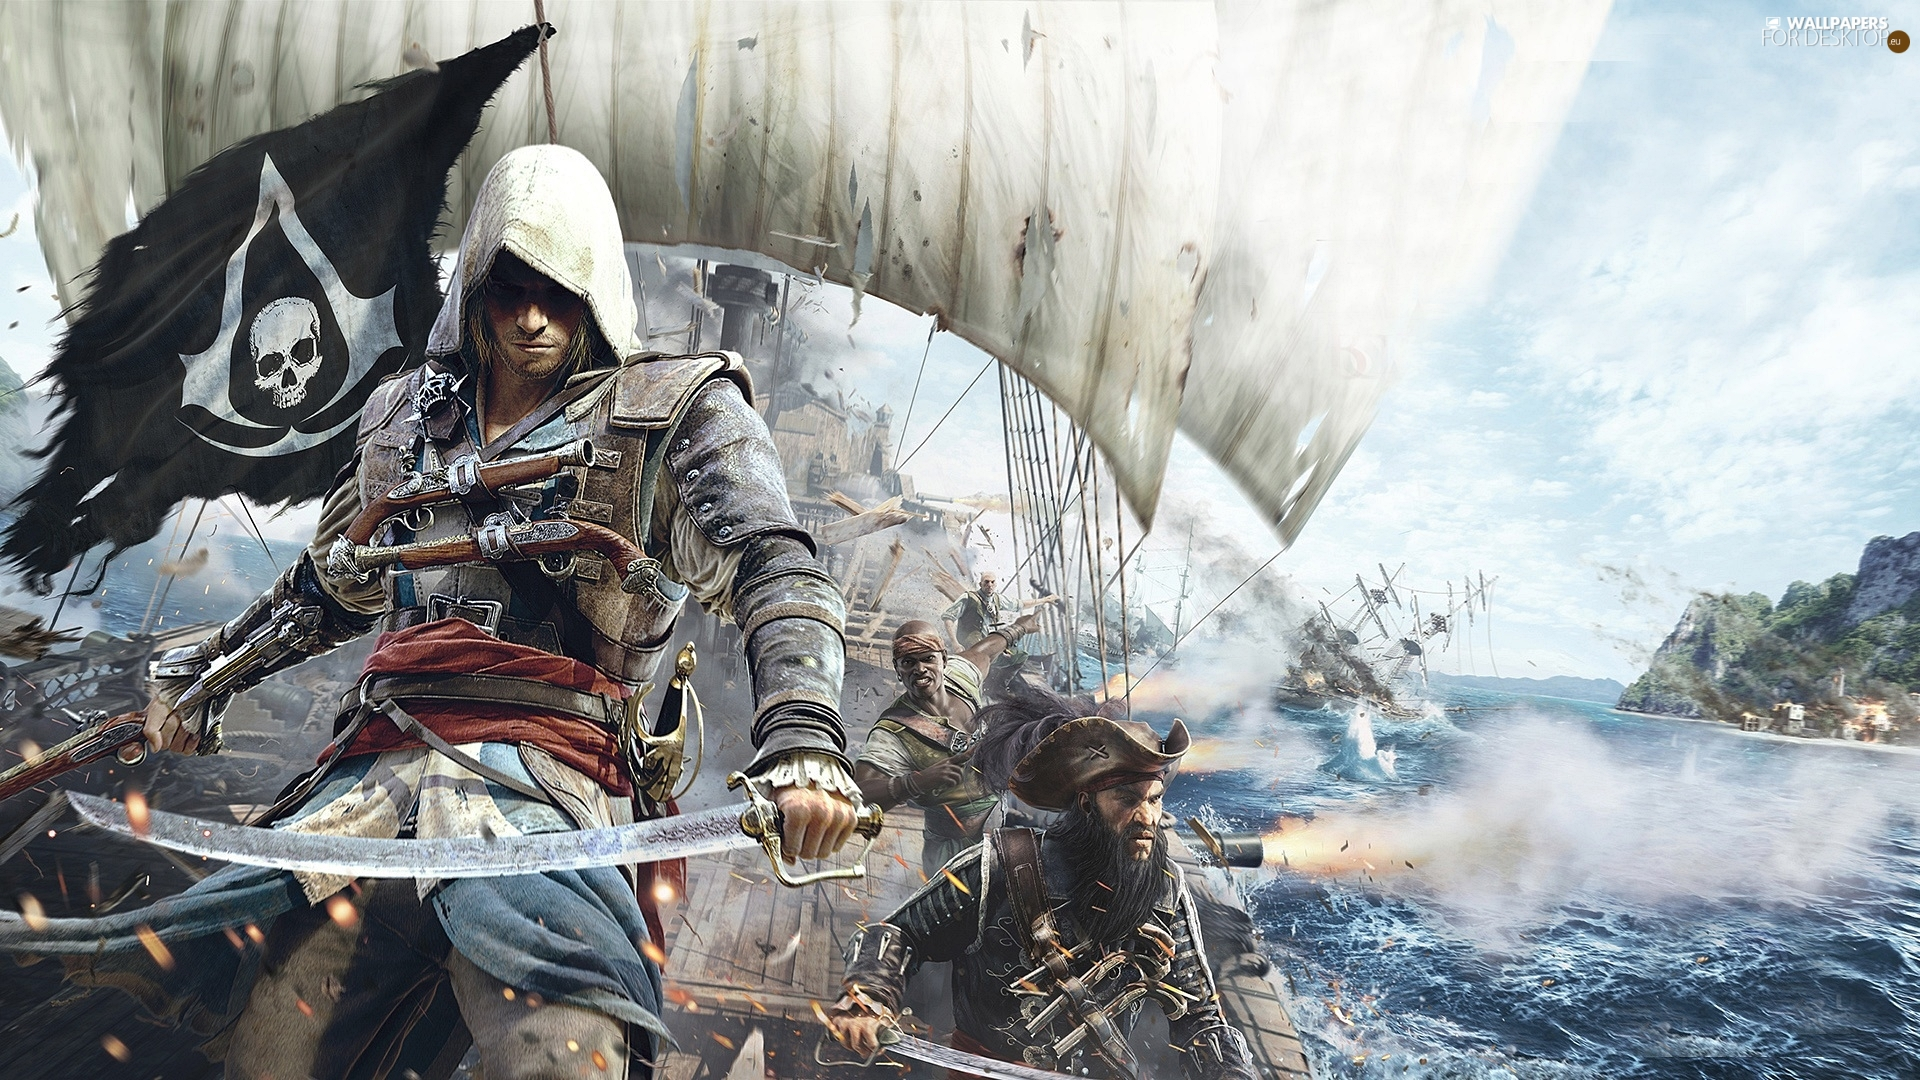 Assassin s creed 2 mobile game 320x240 ch i game gunny bunny 2